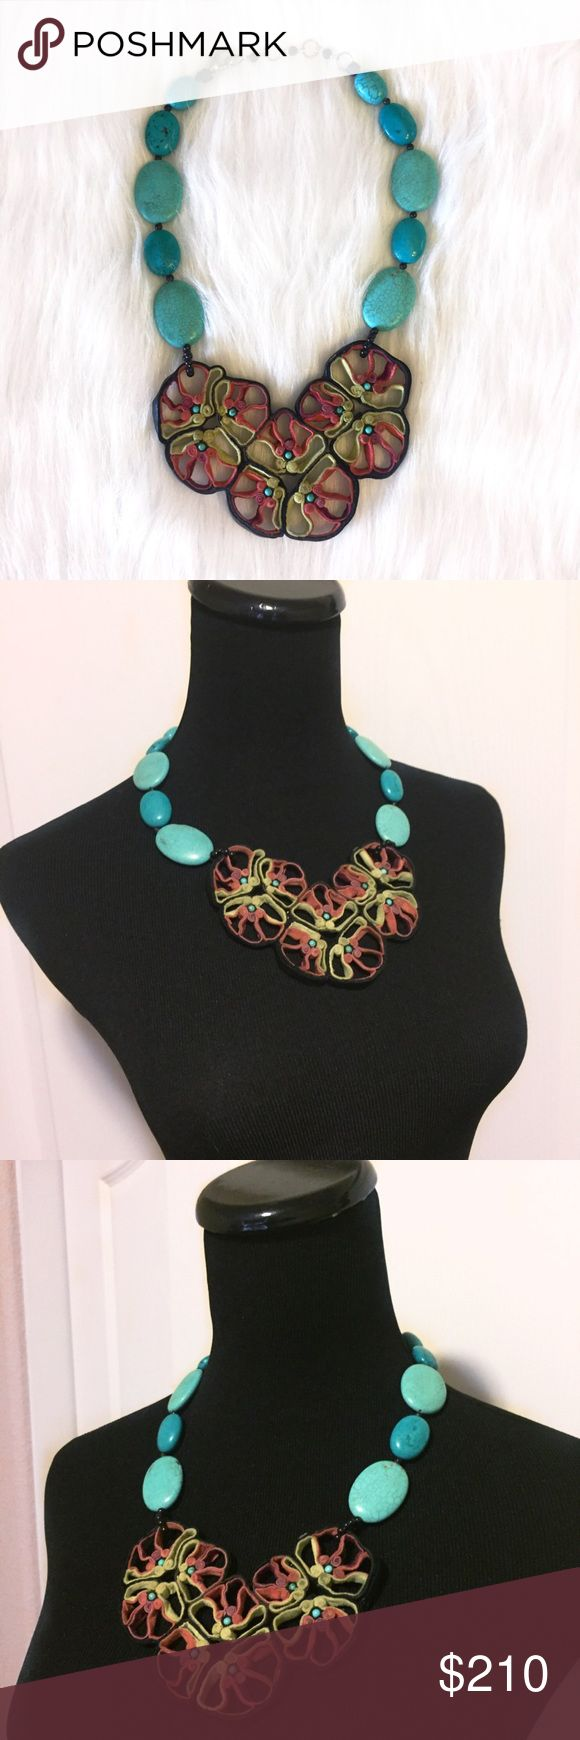 """Southwest Tribal Turquoise & Rolled Suede Necklace Designs by Alicia P """"Winter Tropics Bouquet"""" tribal necklace. Crafted by the prolific southwestern contemporary jewelry designer Alicia Piller. New without tag (didn't come with one.) This unique mixed media necklace is a piece of art. EVERYONE will ask you about it!  Made out of turquoise, rolled suede, supple leather, black jasper & silver. Genuine semi-precious stones. Approx 20"""" long. Smoke-free home. No trades. Offers welcome!💕 Designs…"""